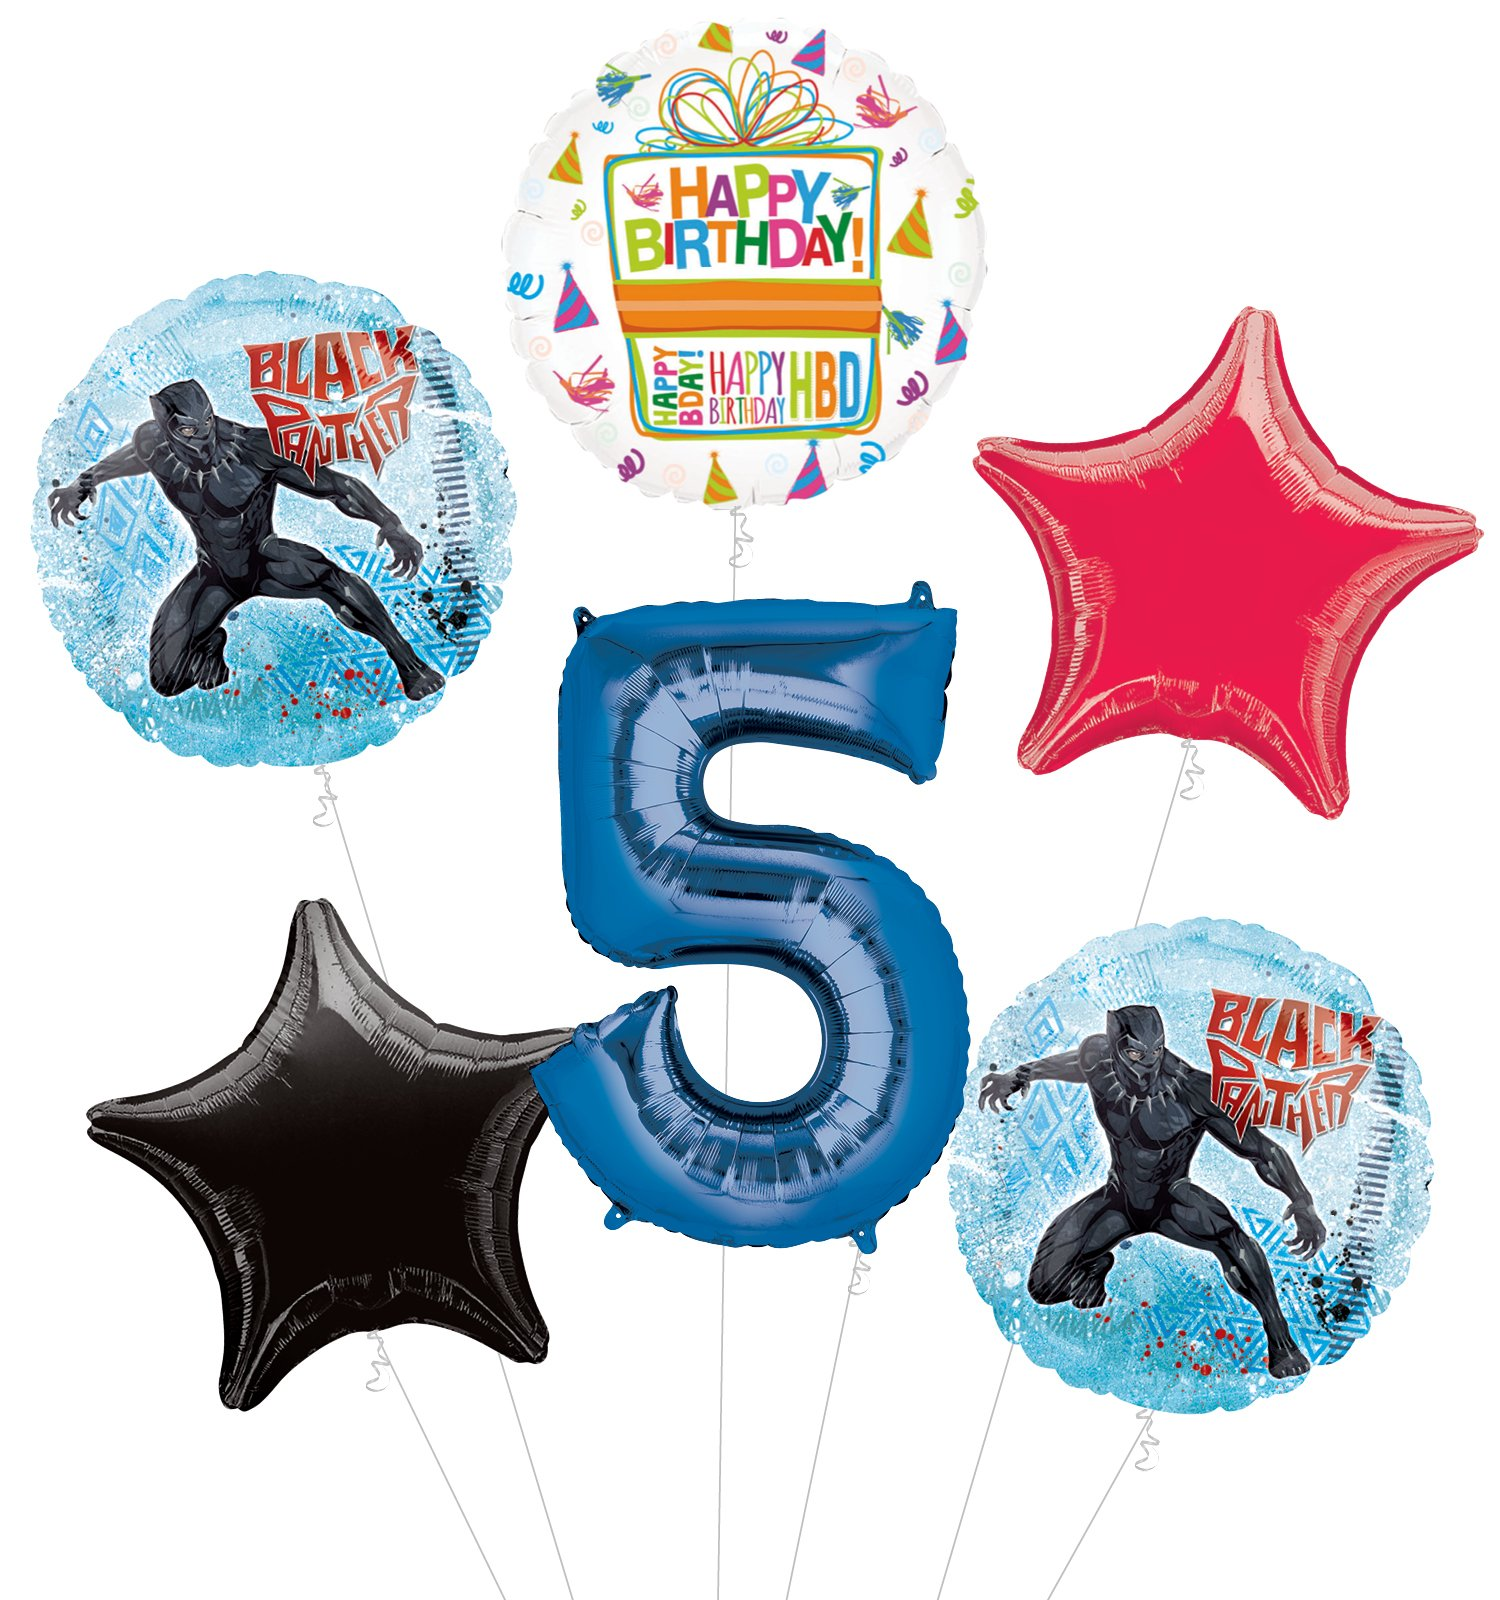 Black Panther 5th Birthday Party Supplies Balloon Bouquet Decorations